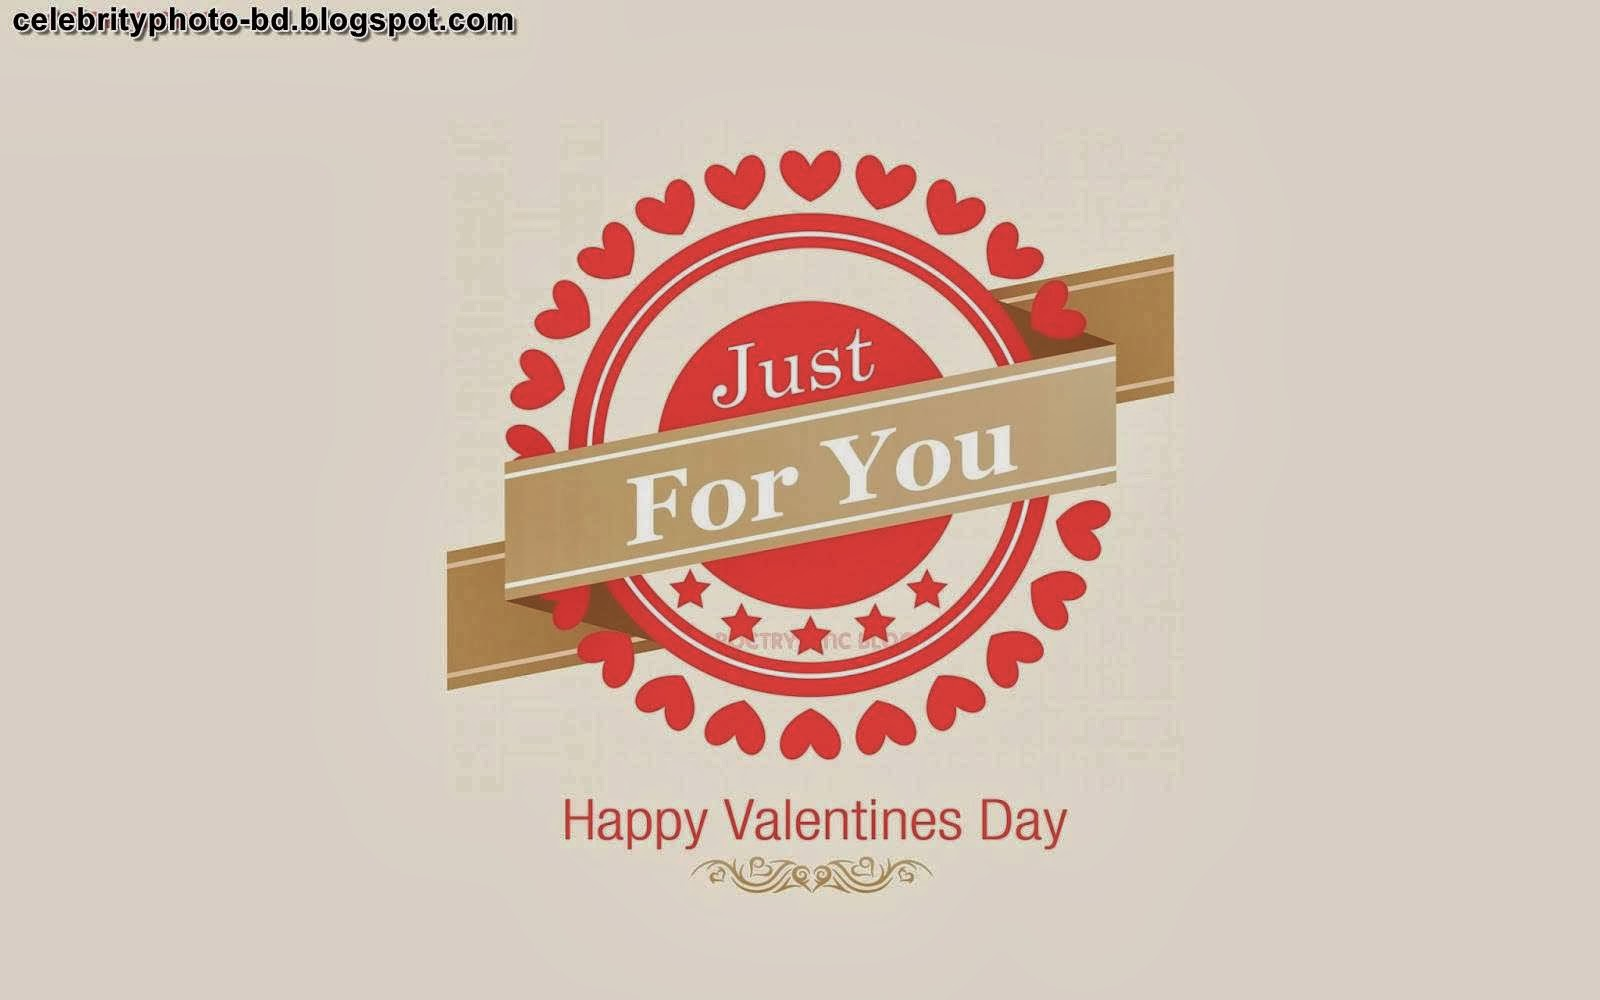 Valentines+Day+Latest+Lovely+Hearts+HD+Wallpapers+and+Wishes+Image+Cards+2014004